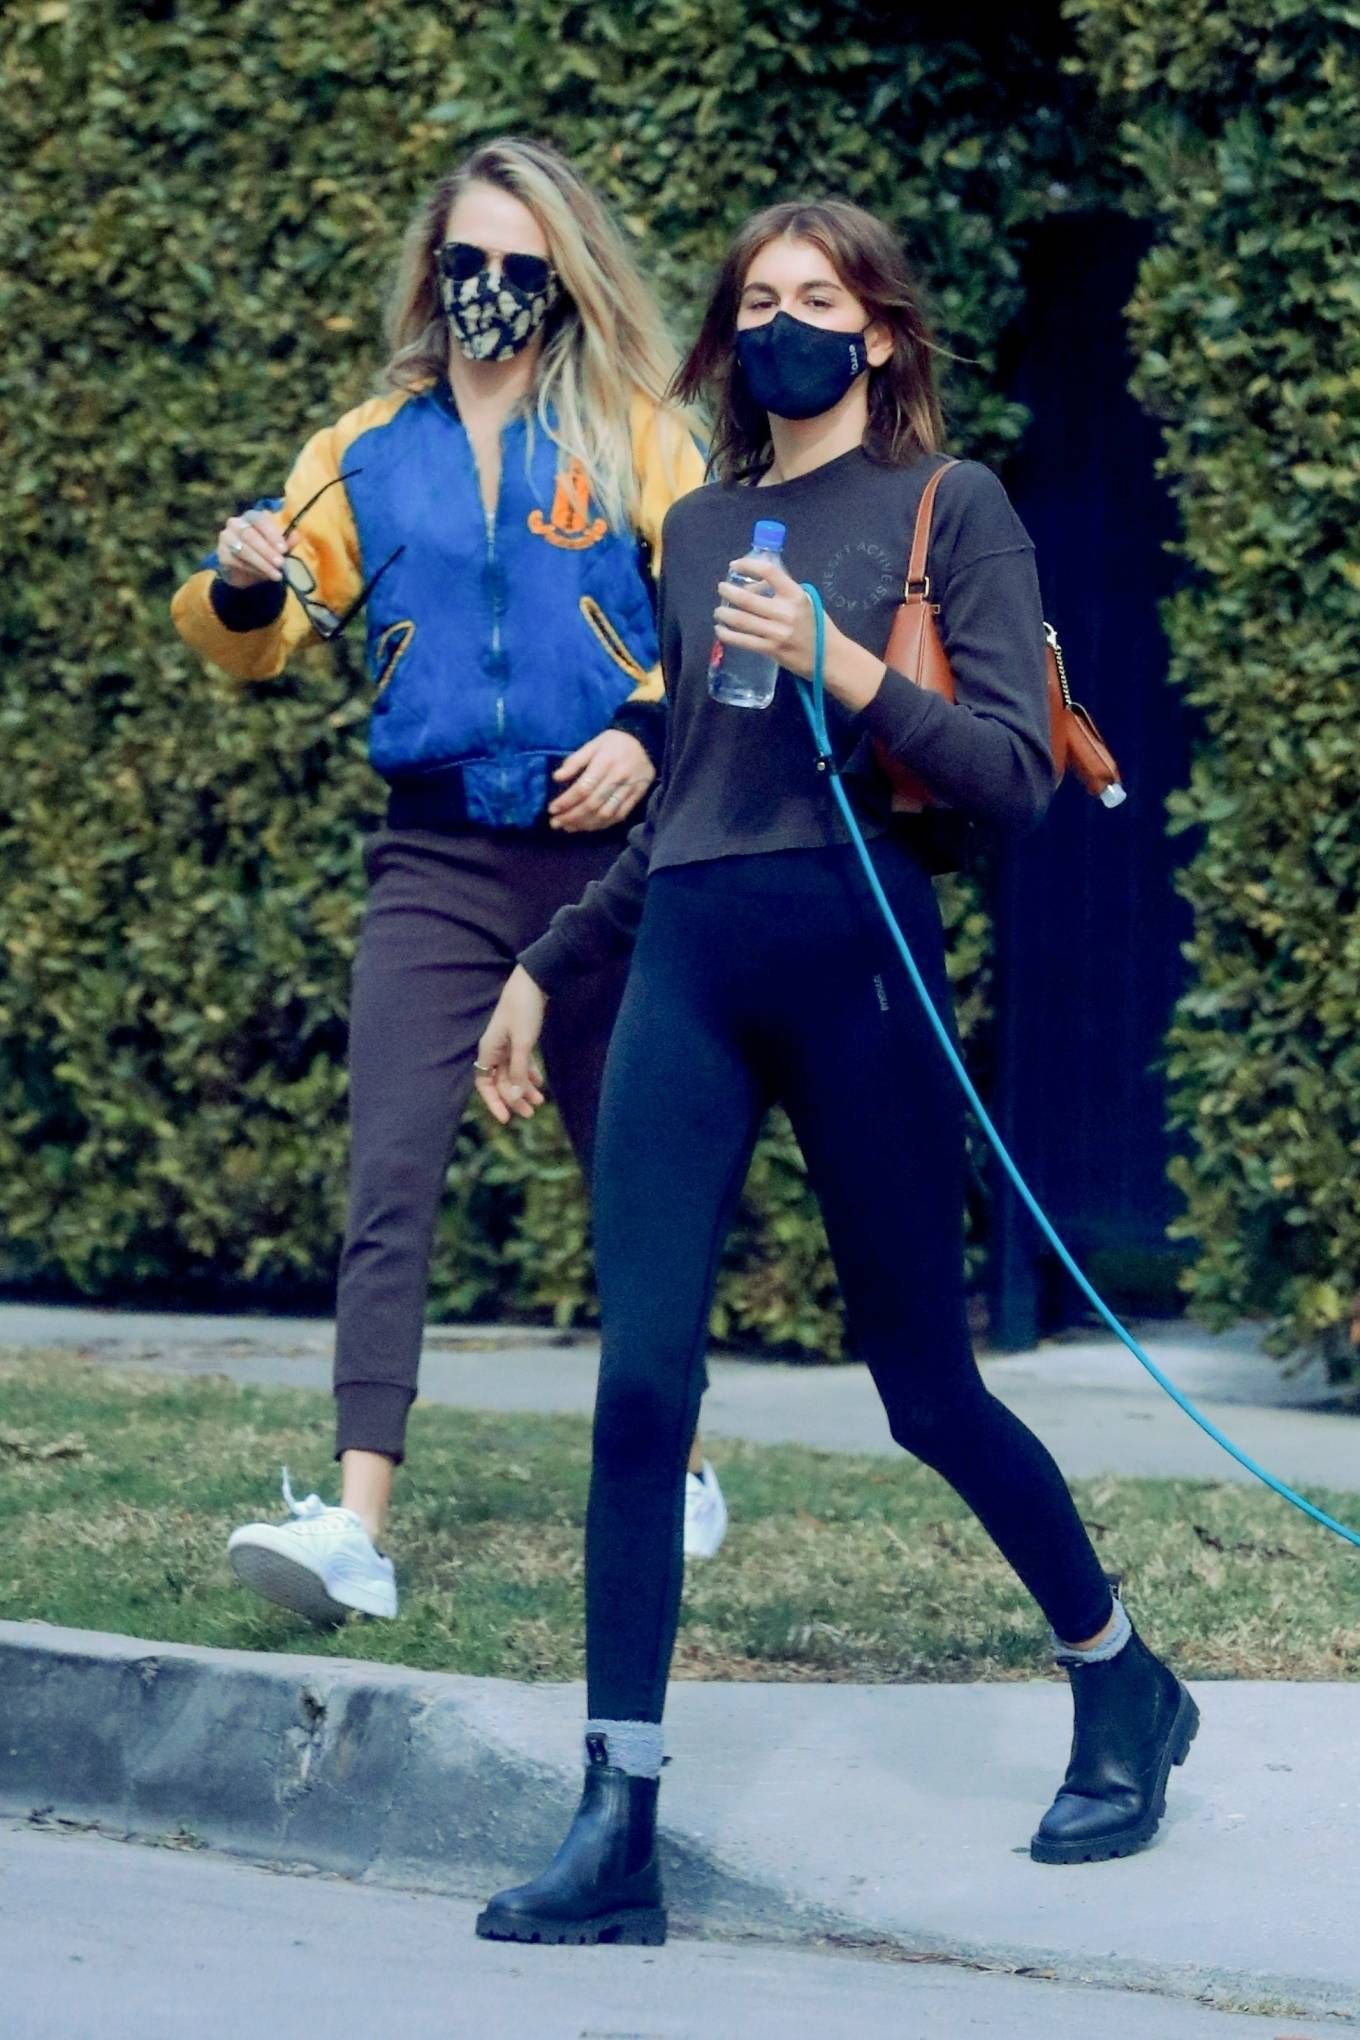 Cara Delevingne and Kaia Gerber - Seen after their pilates class in Los Angeles